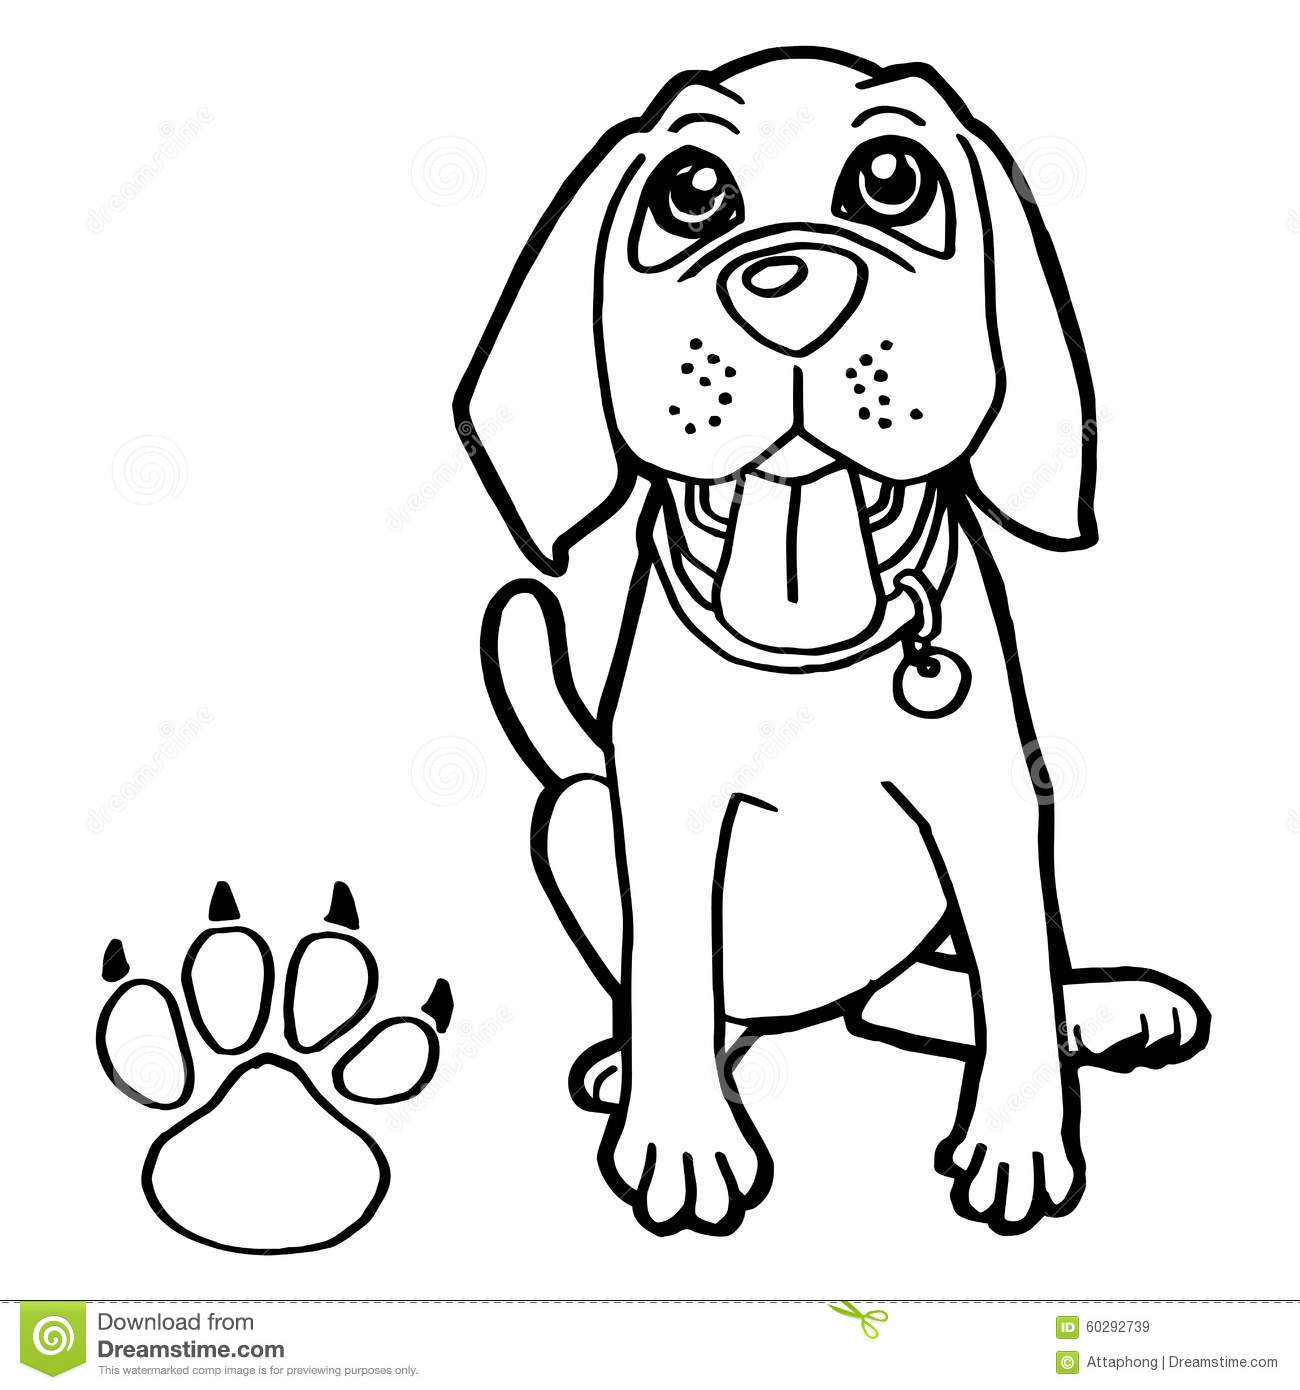 paw print coloring page - pin puppy paws colouring pages on pinterest